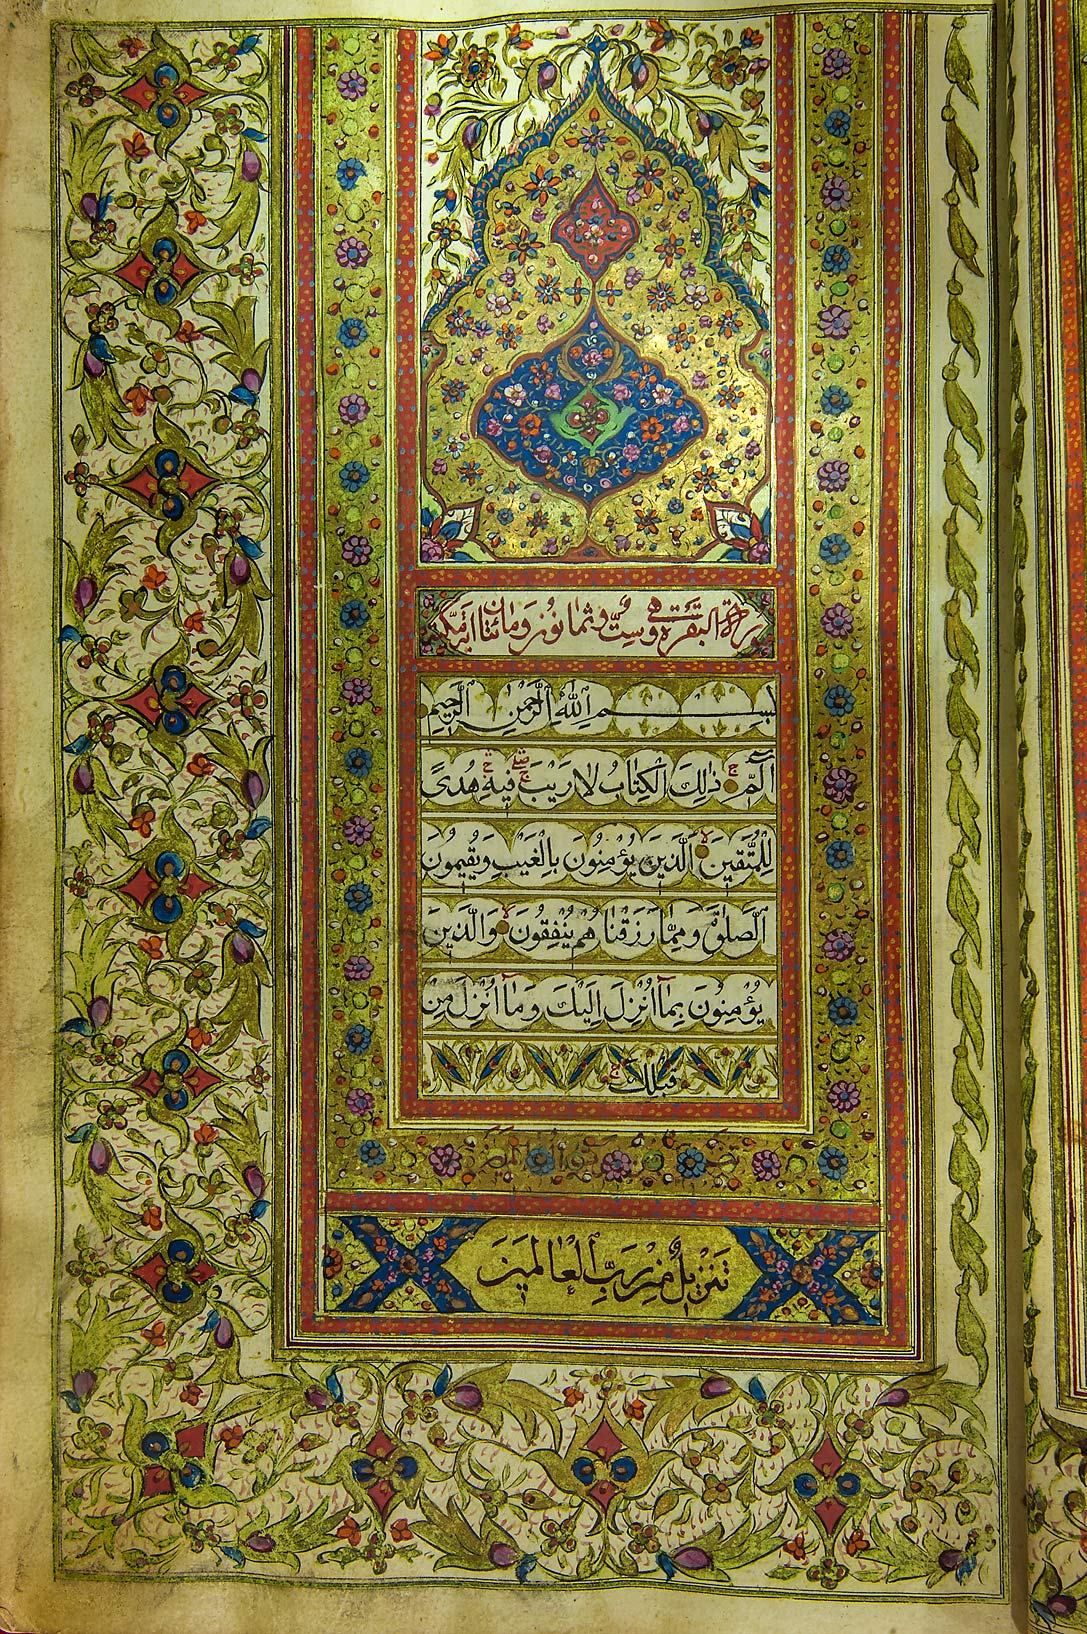 Decorated book in Sheikh Faisal Bin Qassim Al Thani Museum near Al-Shahaniya. Doha, Qatar